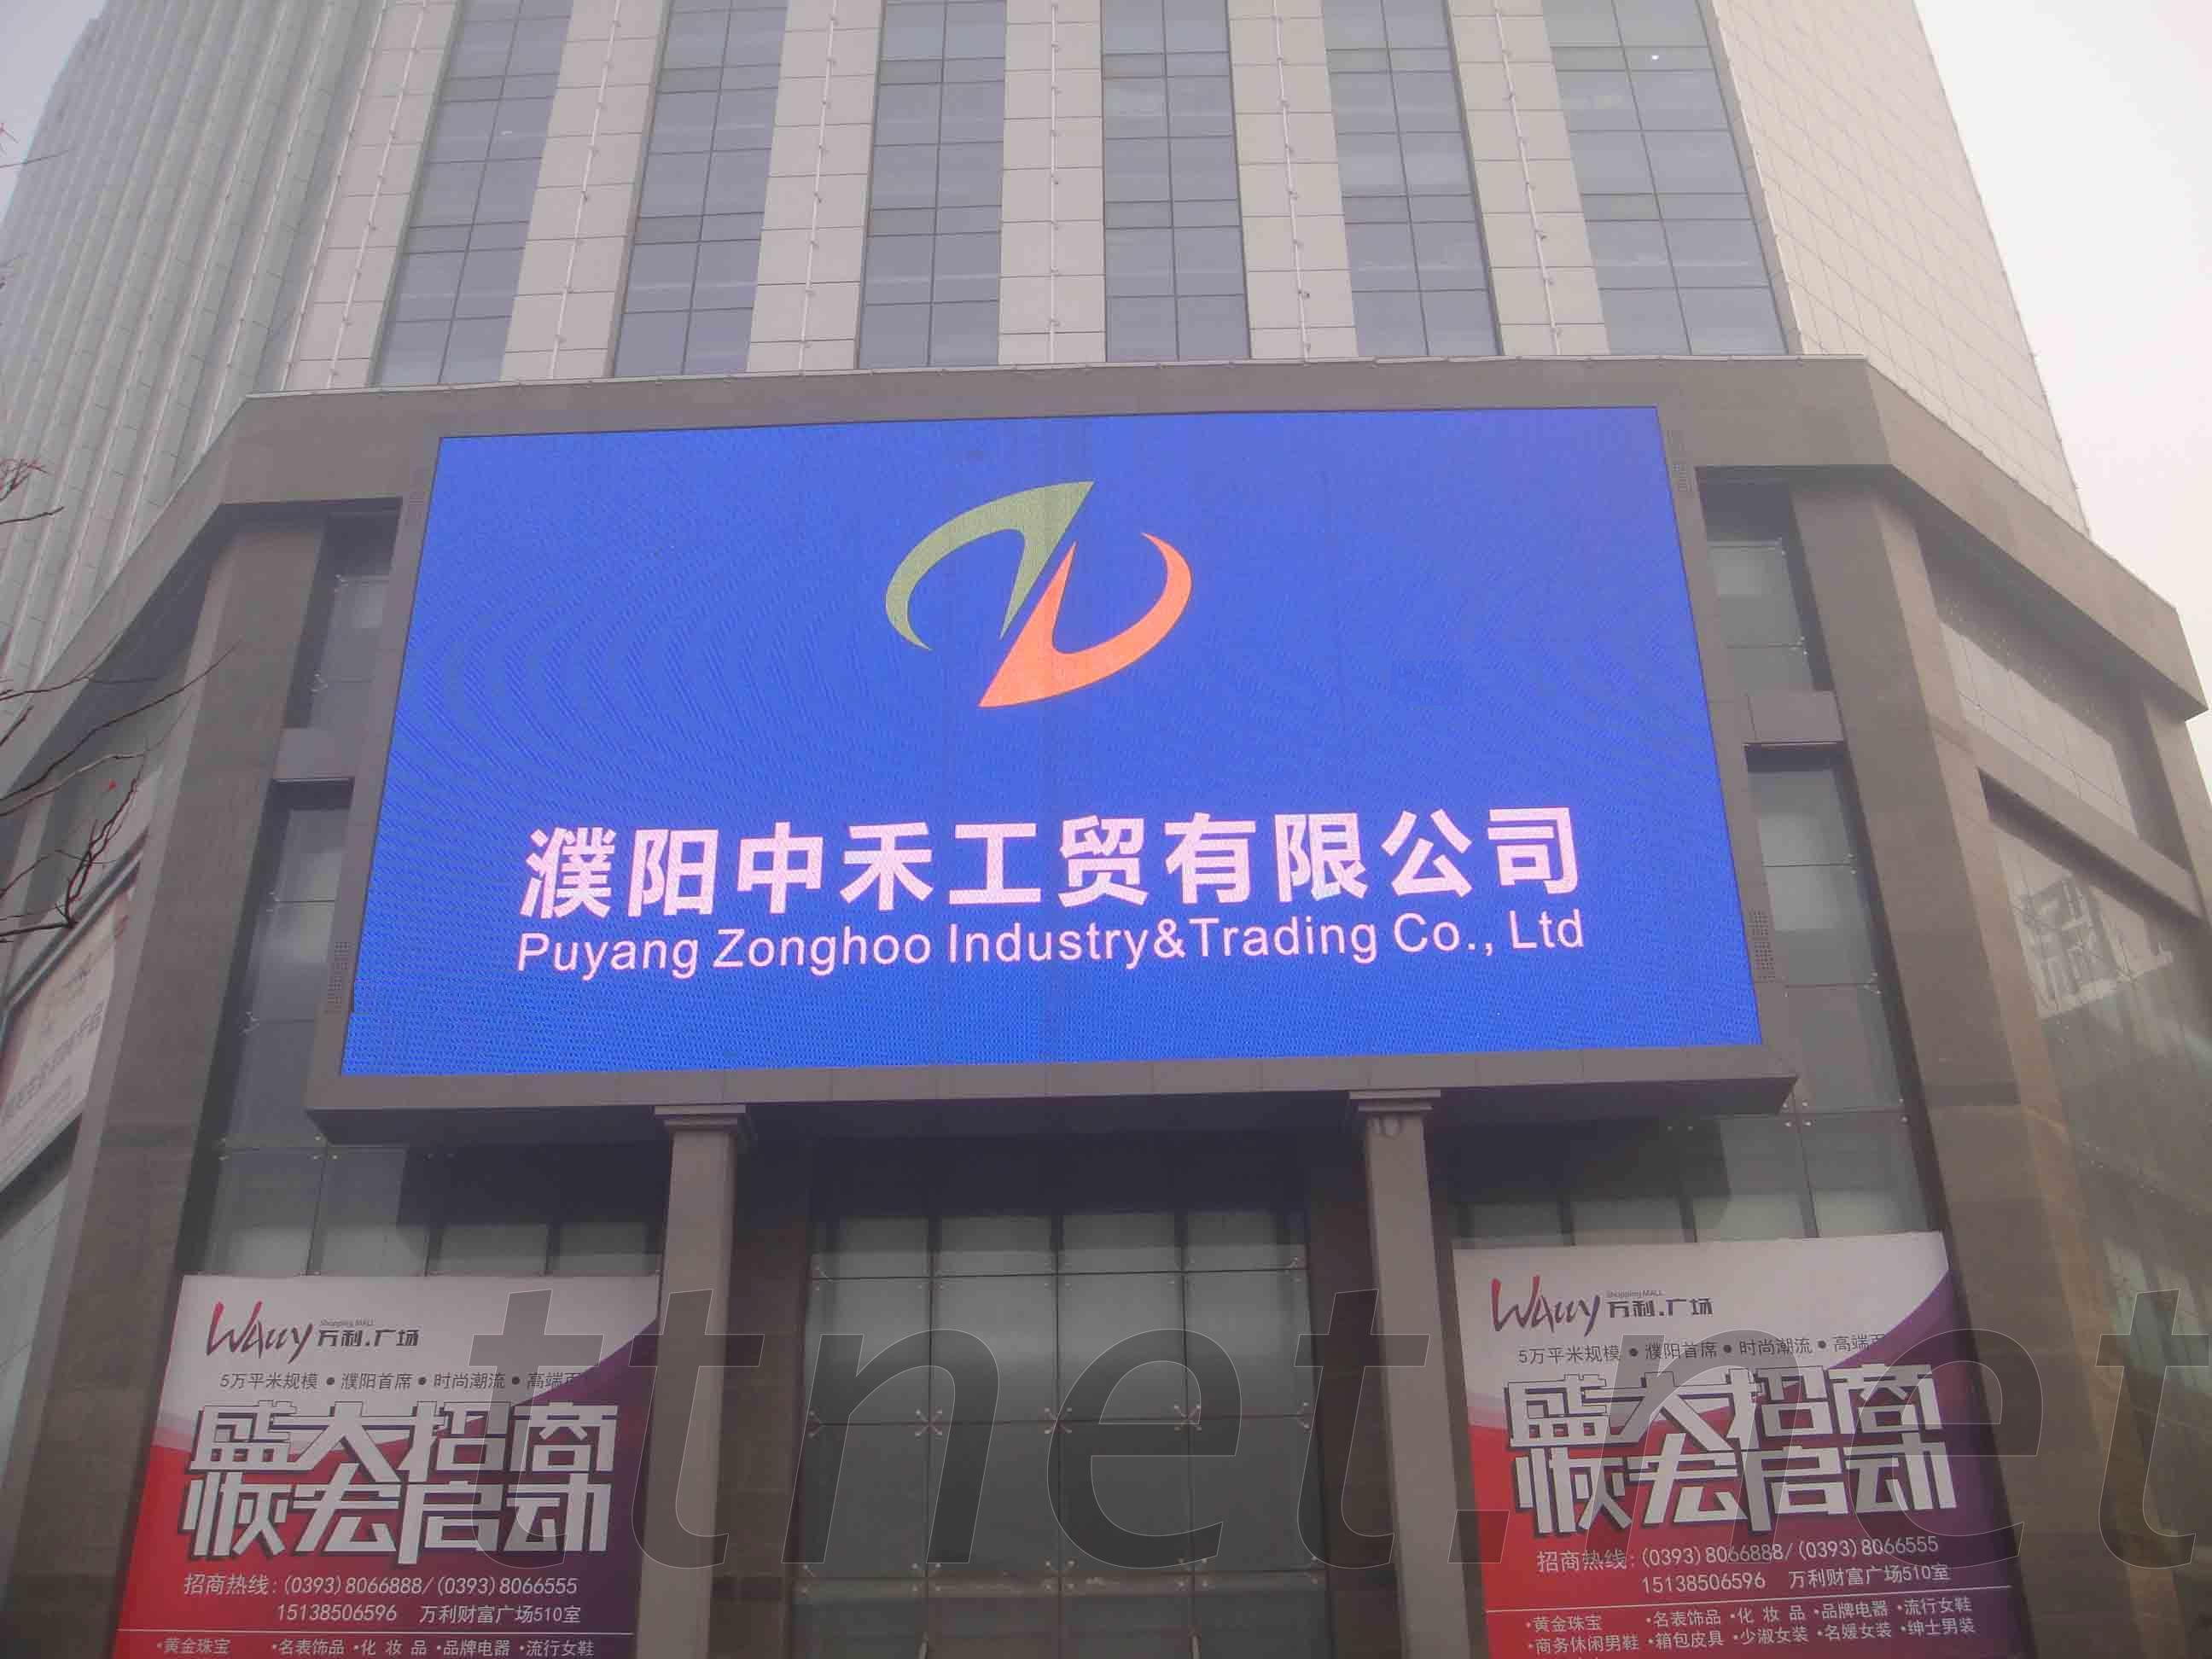 Puyang Zonghoo Industrial And Trading Co., Ltd